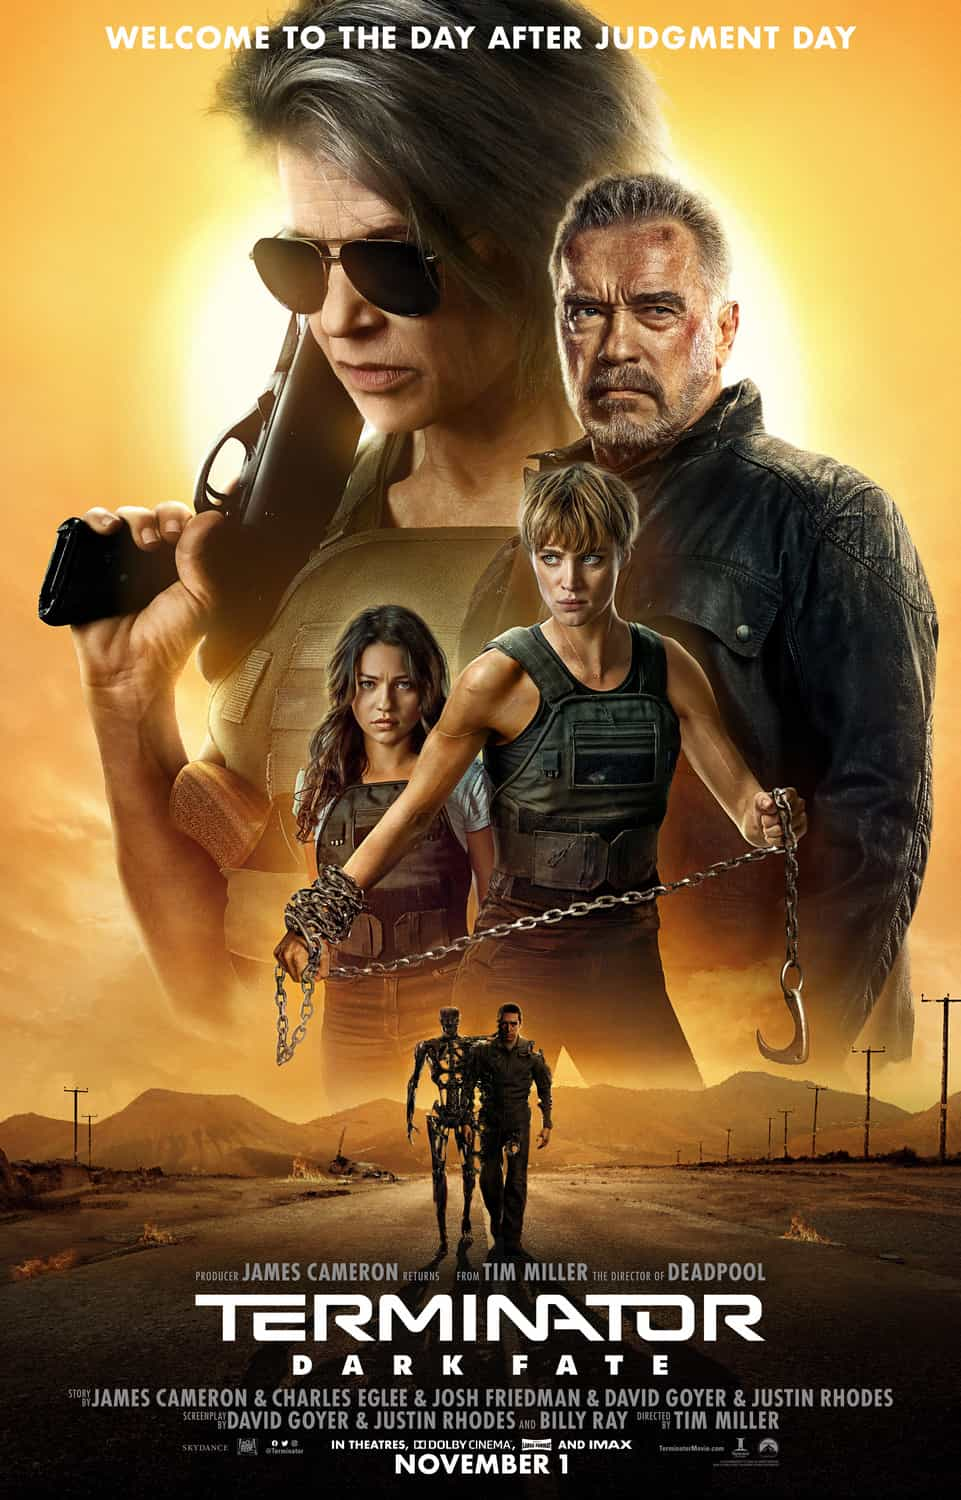 World Box Office Analysis 1st - 3rd November 2019:  Terminator: Dark Fate tops the global box office but its worrying for the franchise